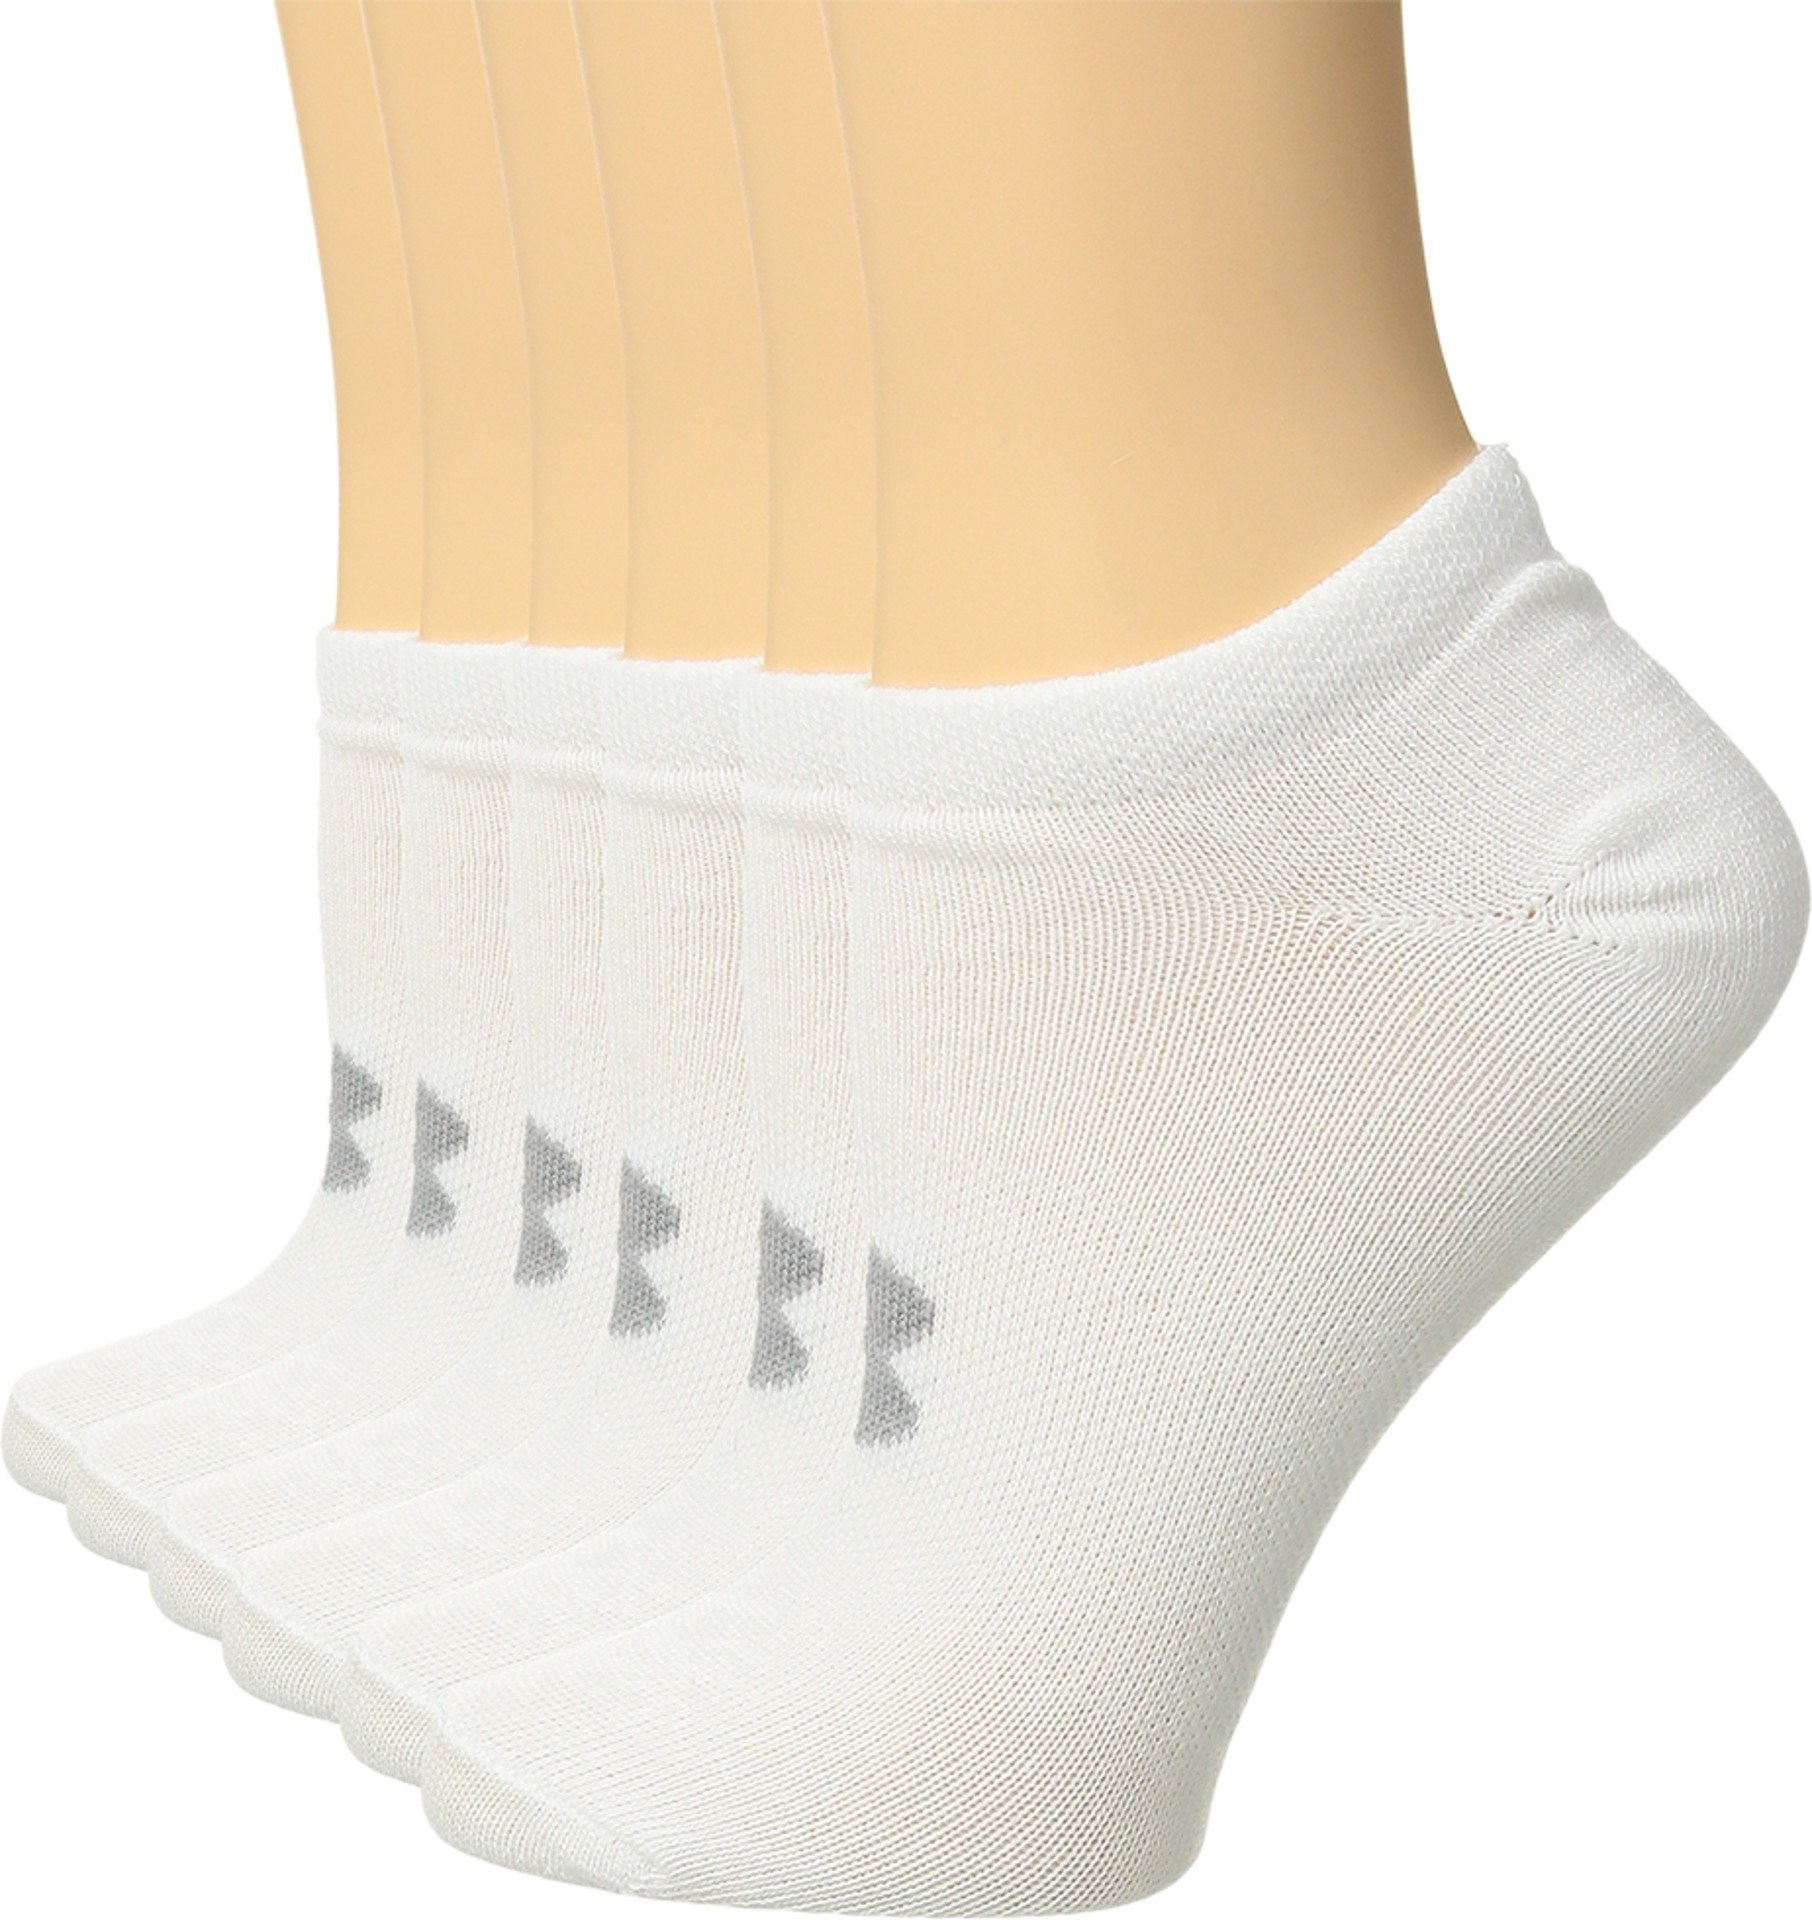 Under Armour Women's Essential No Show Socks (6 Pack), White (1259396-102) / Anthracite/White, Medium by Under Armour